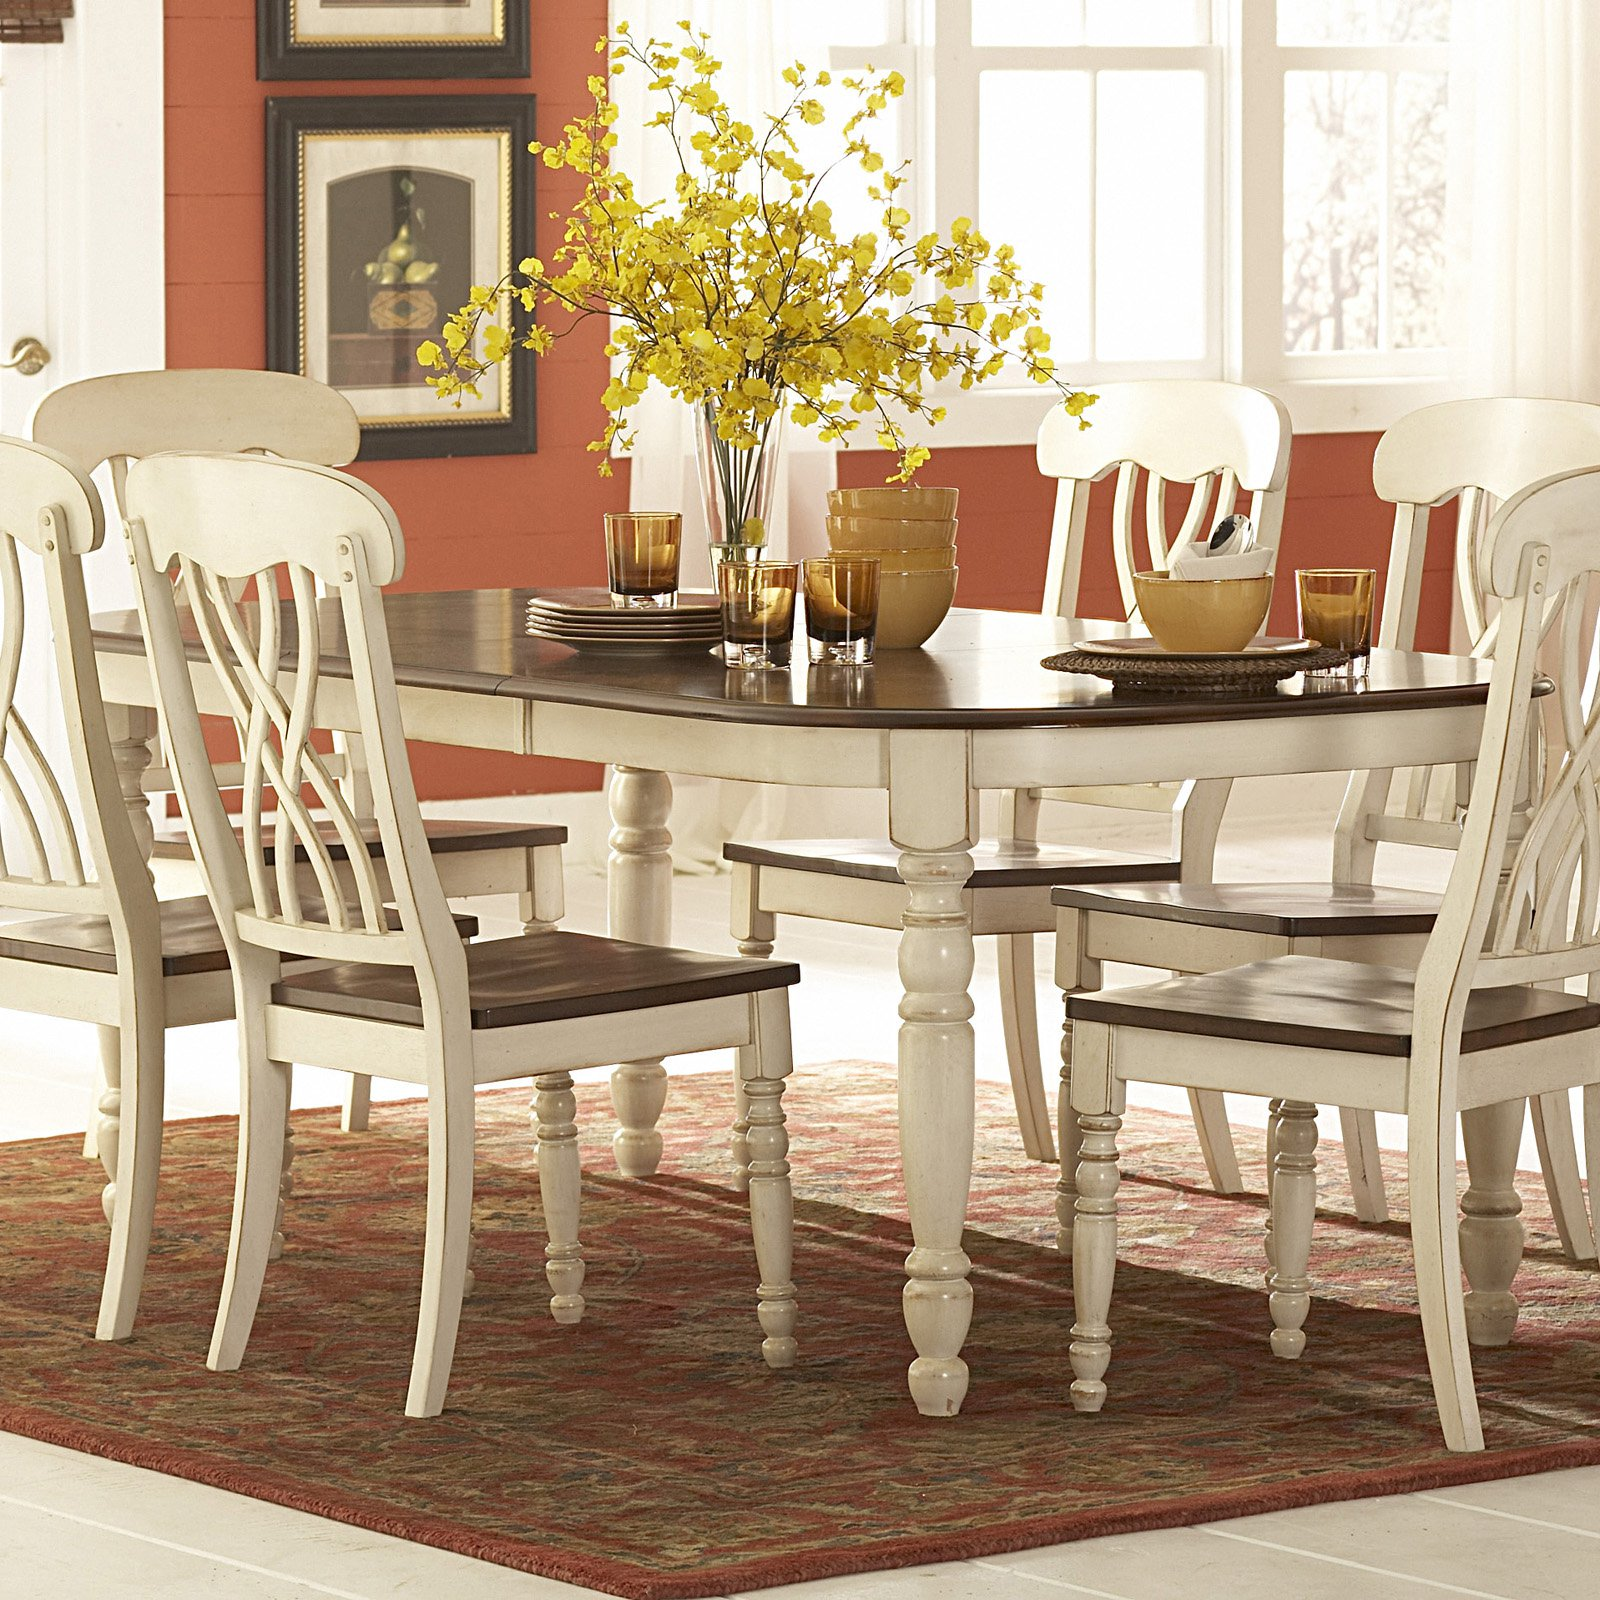 Humblenest Homestead Extendable Two Tone Dining Table With Leaf